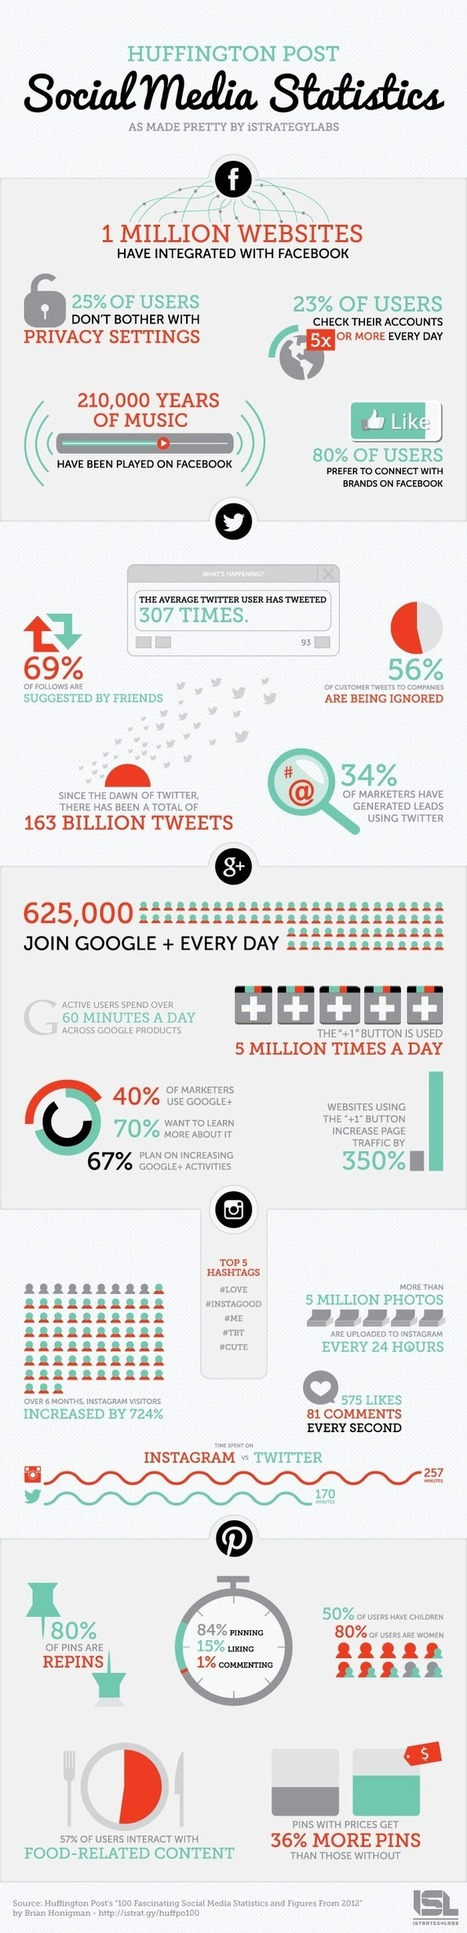 Infographic - Social Media Statistics for 2013 | Subjective Well Being | Scoop.it